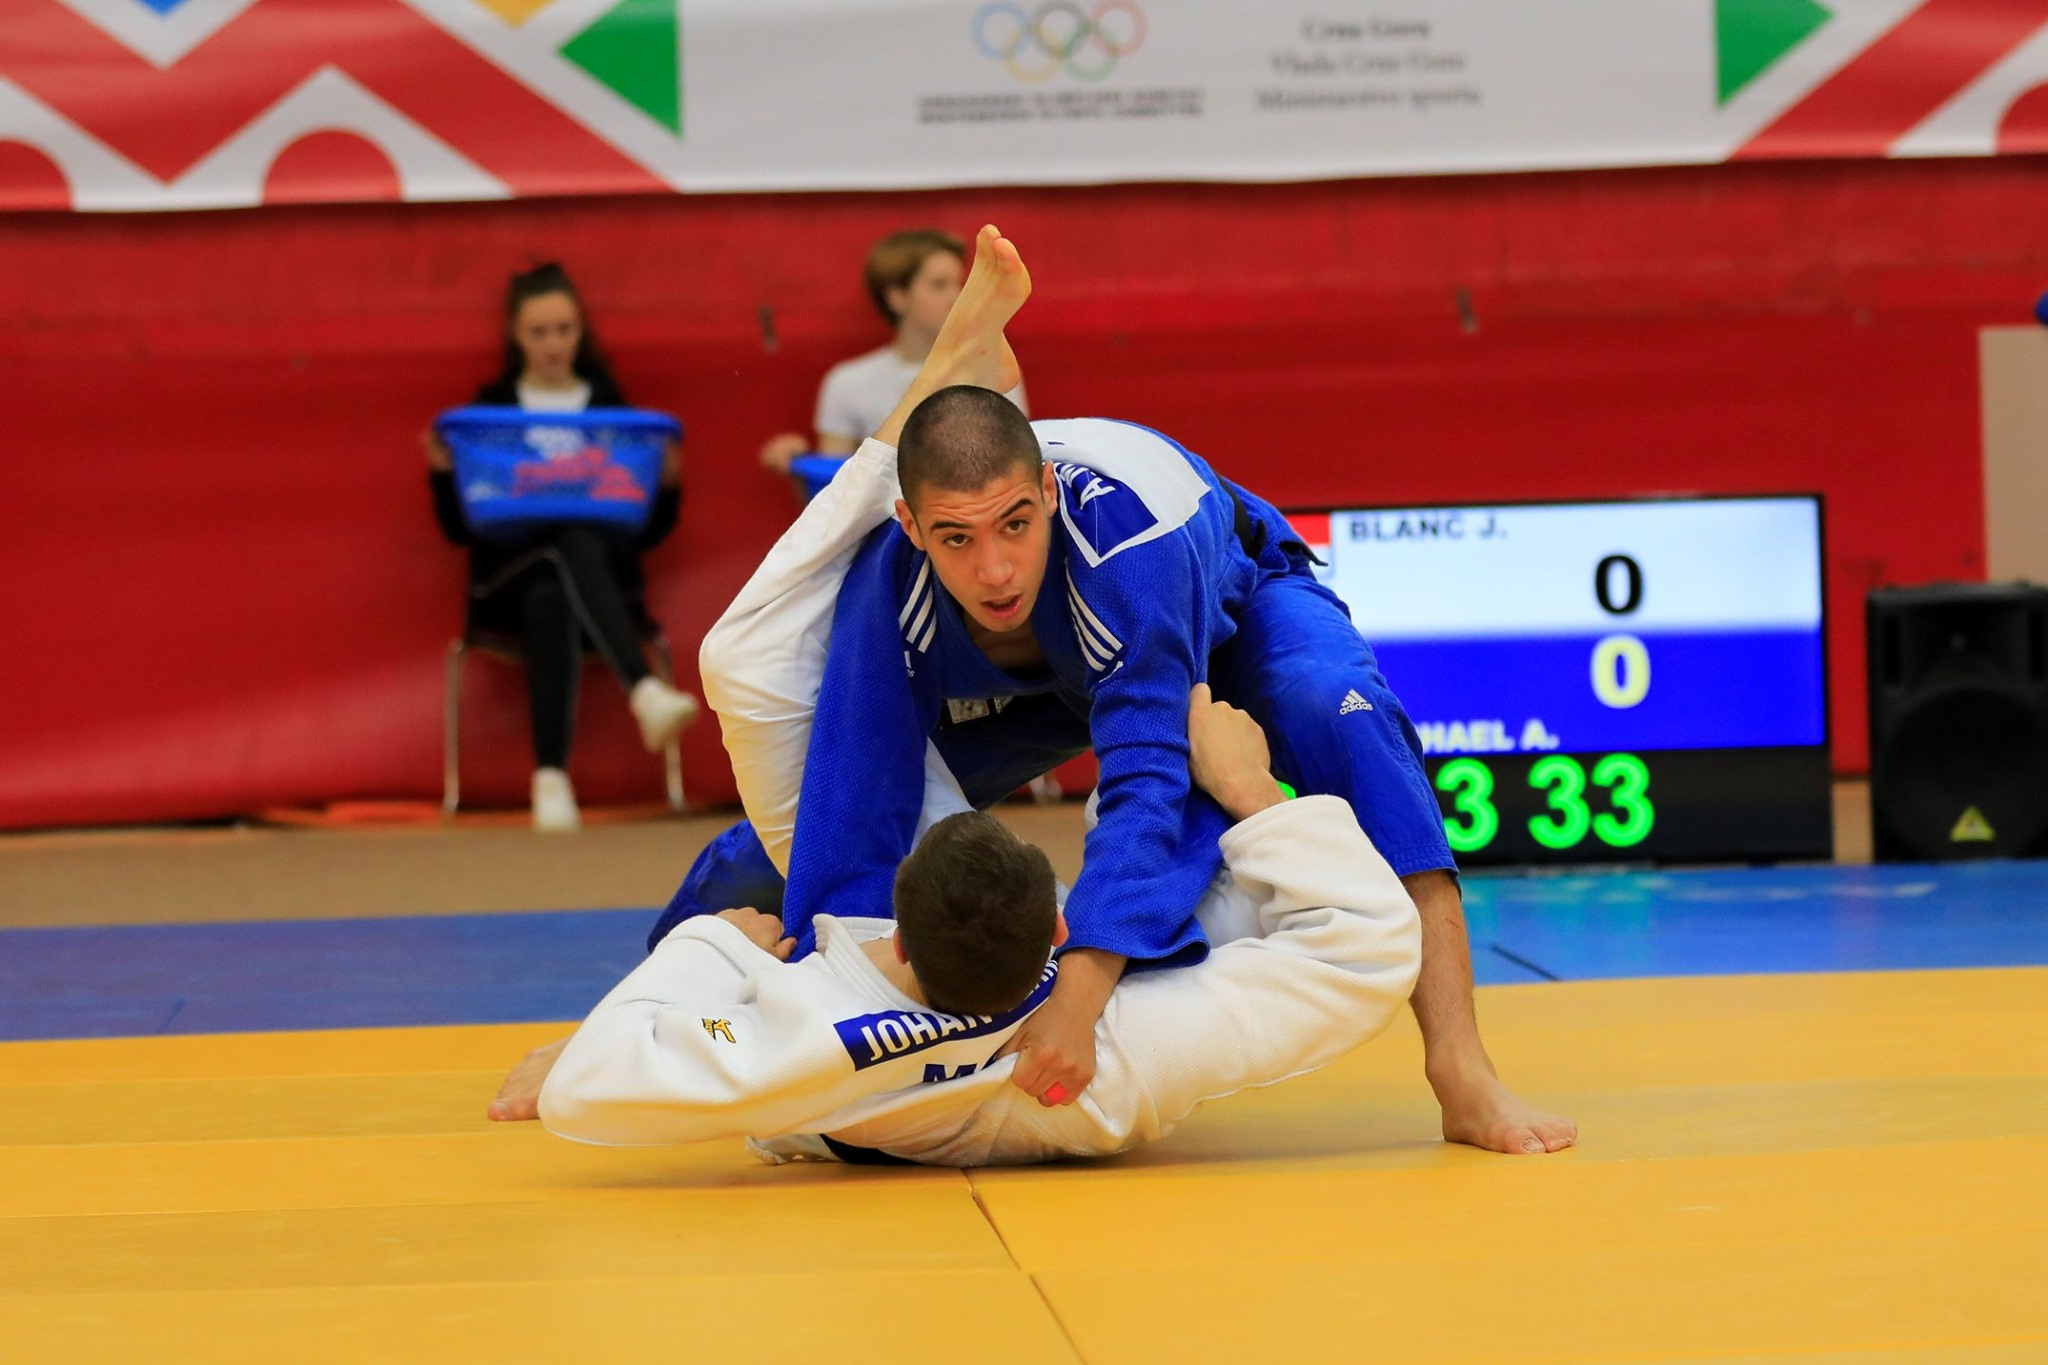 Aristos Michael in action - Photo: Cyprus Olympic Committee